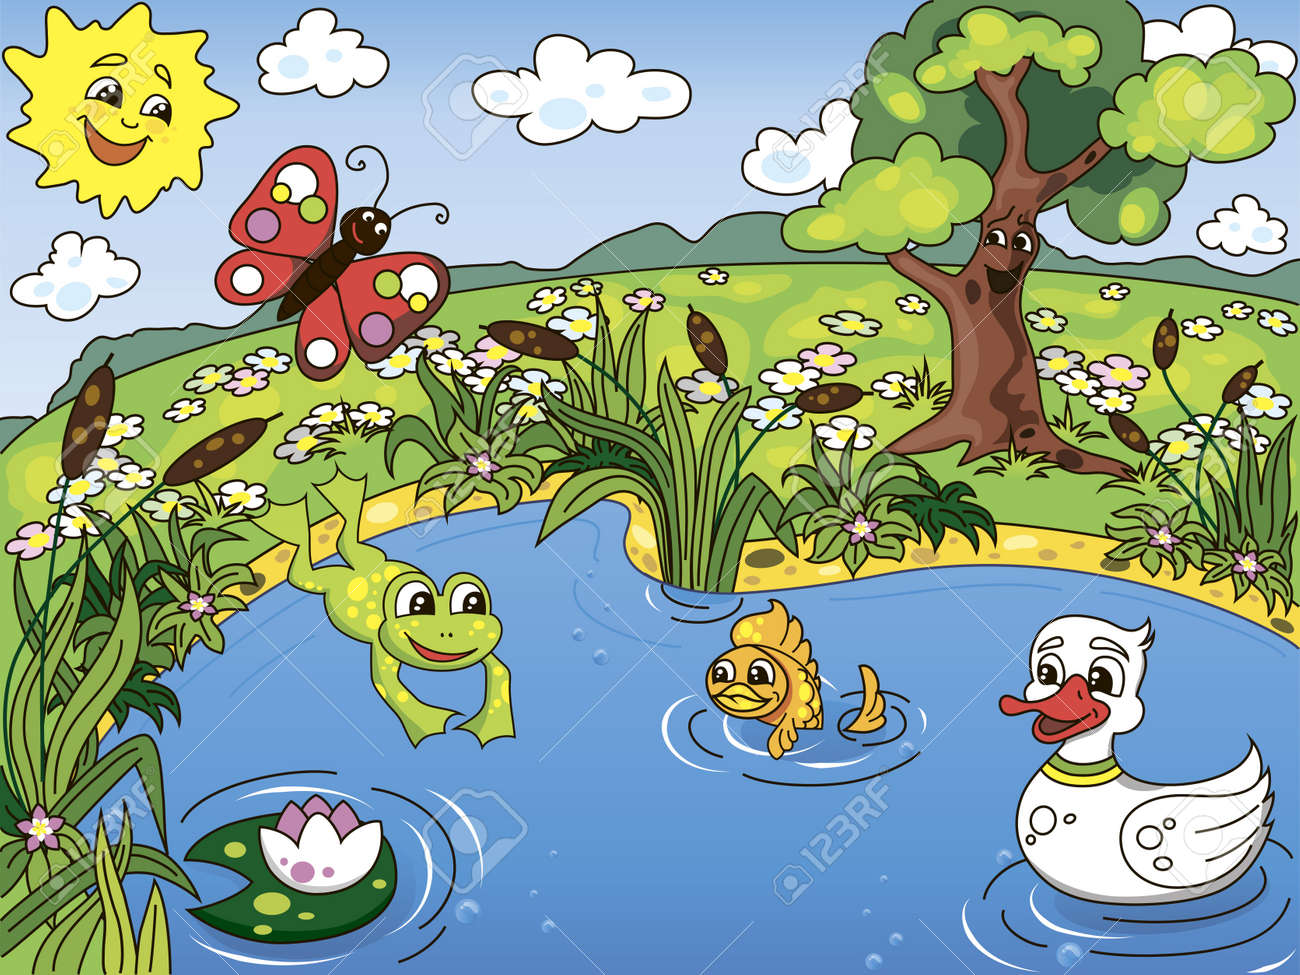 Cartoon kid s illustration of the pond life with a frog, fish, duck, butterfly and lotus Stock Vector - 12820550